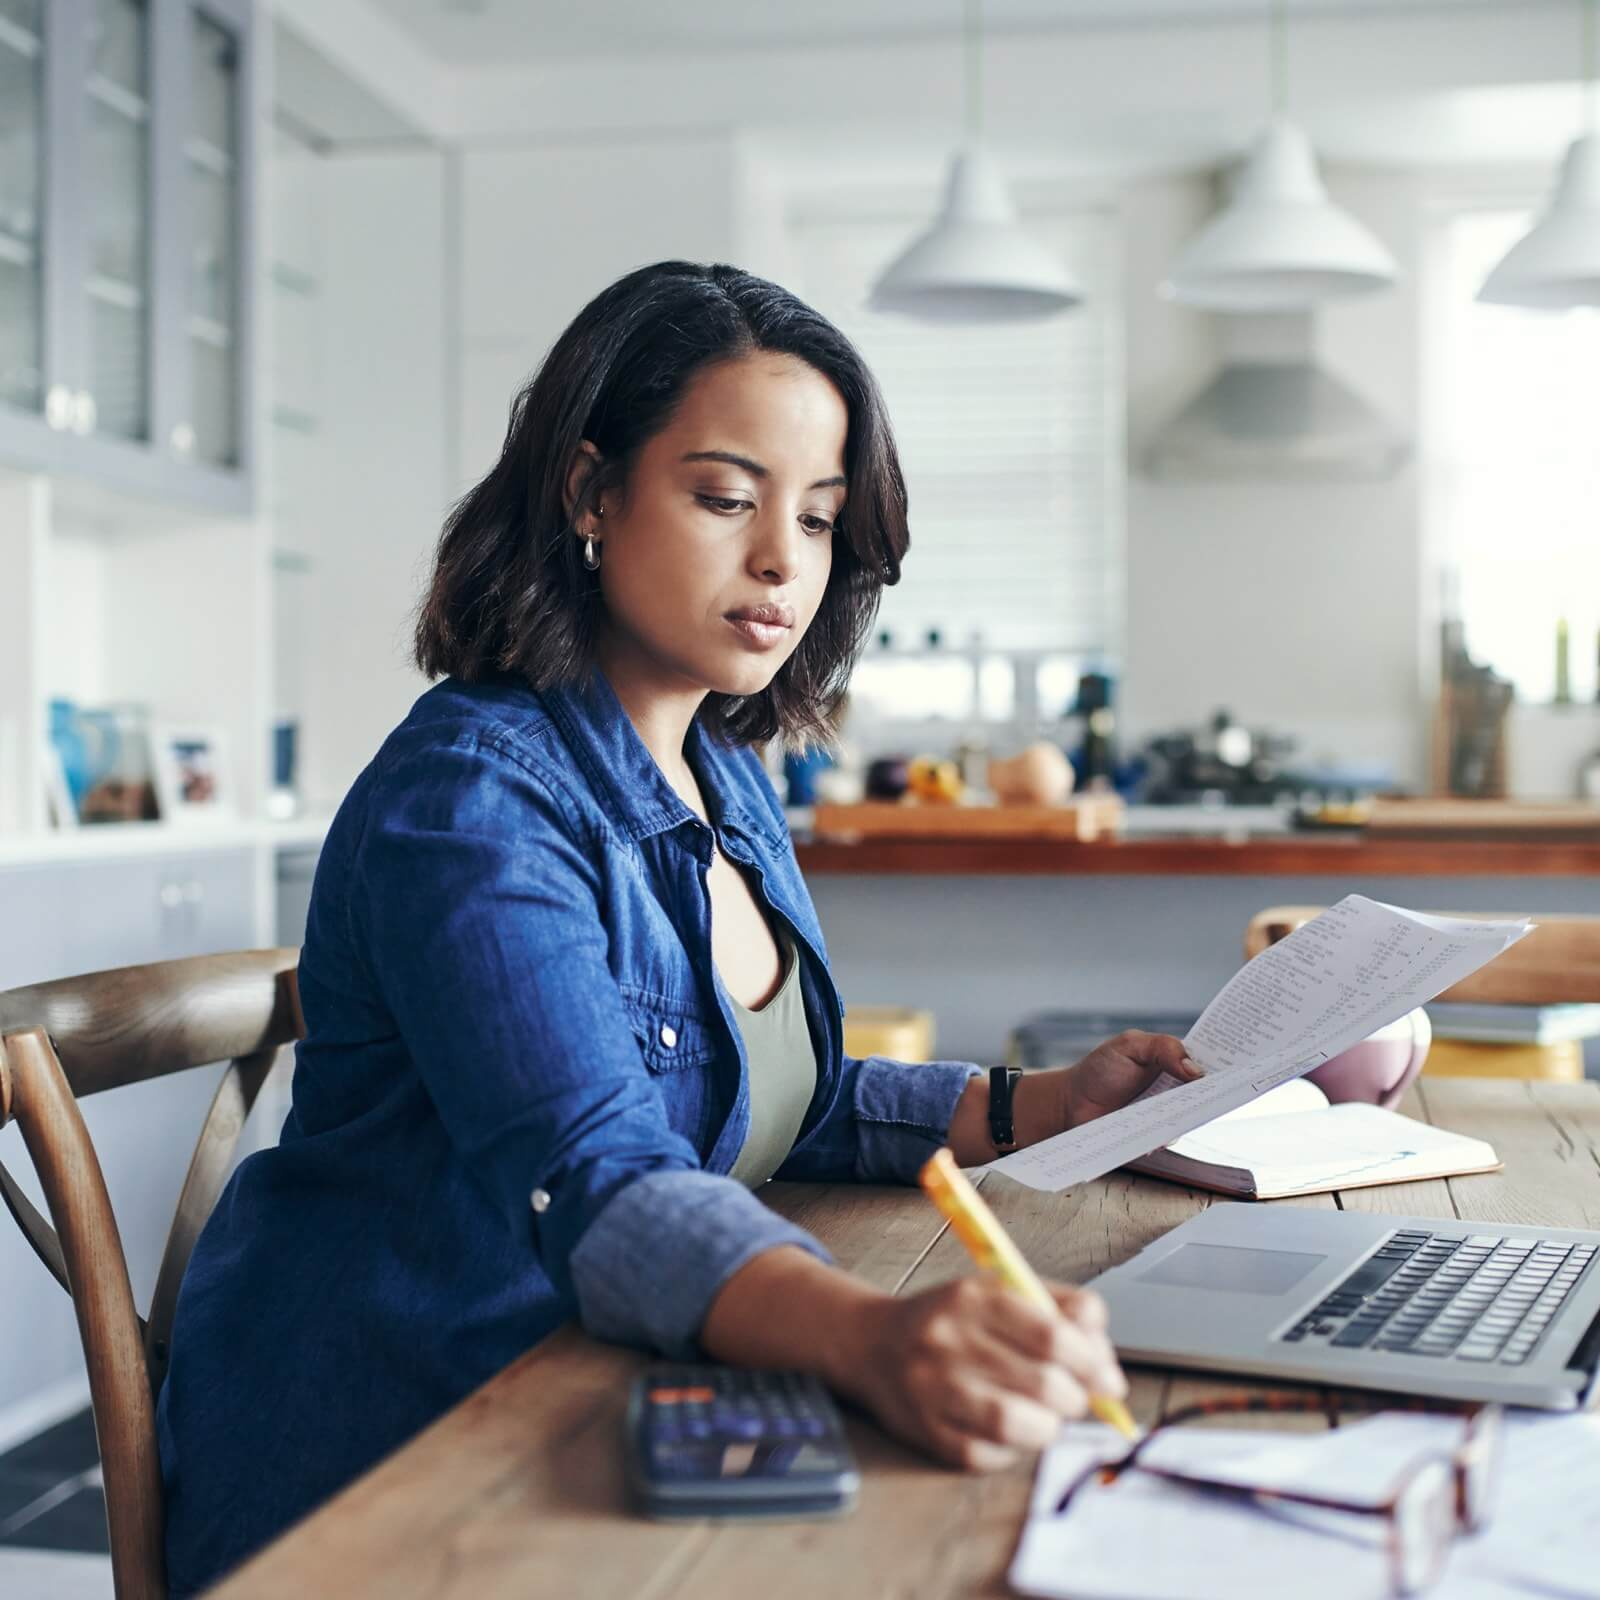 woman working at table with laptop